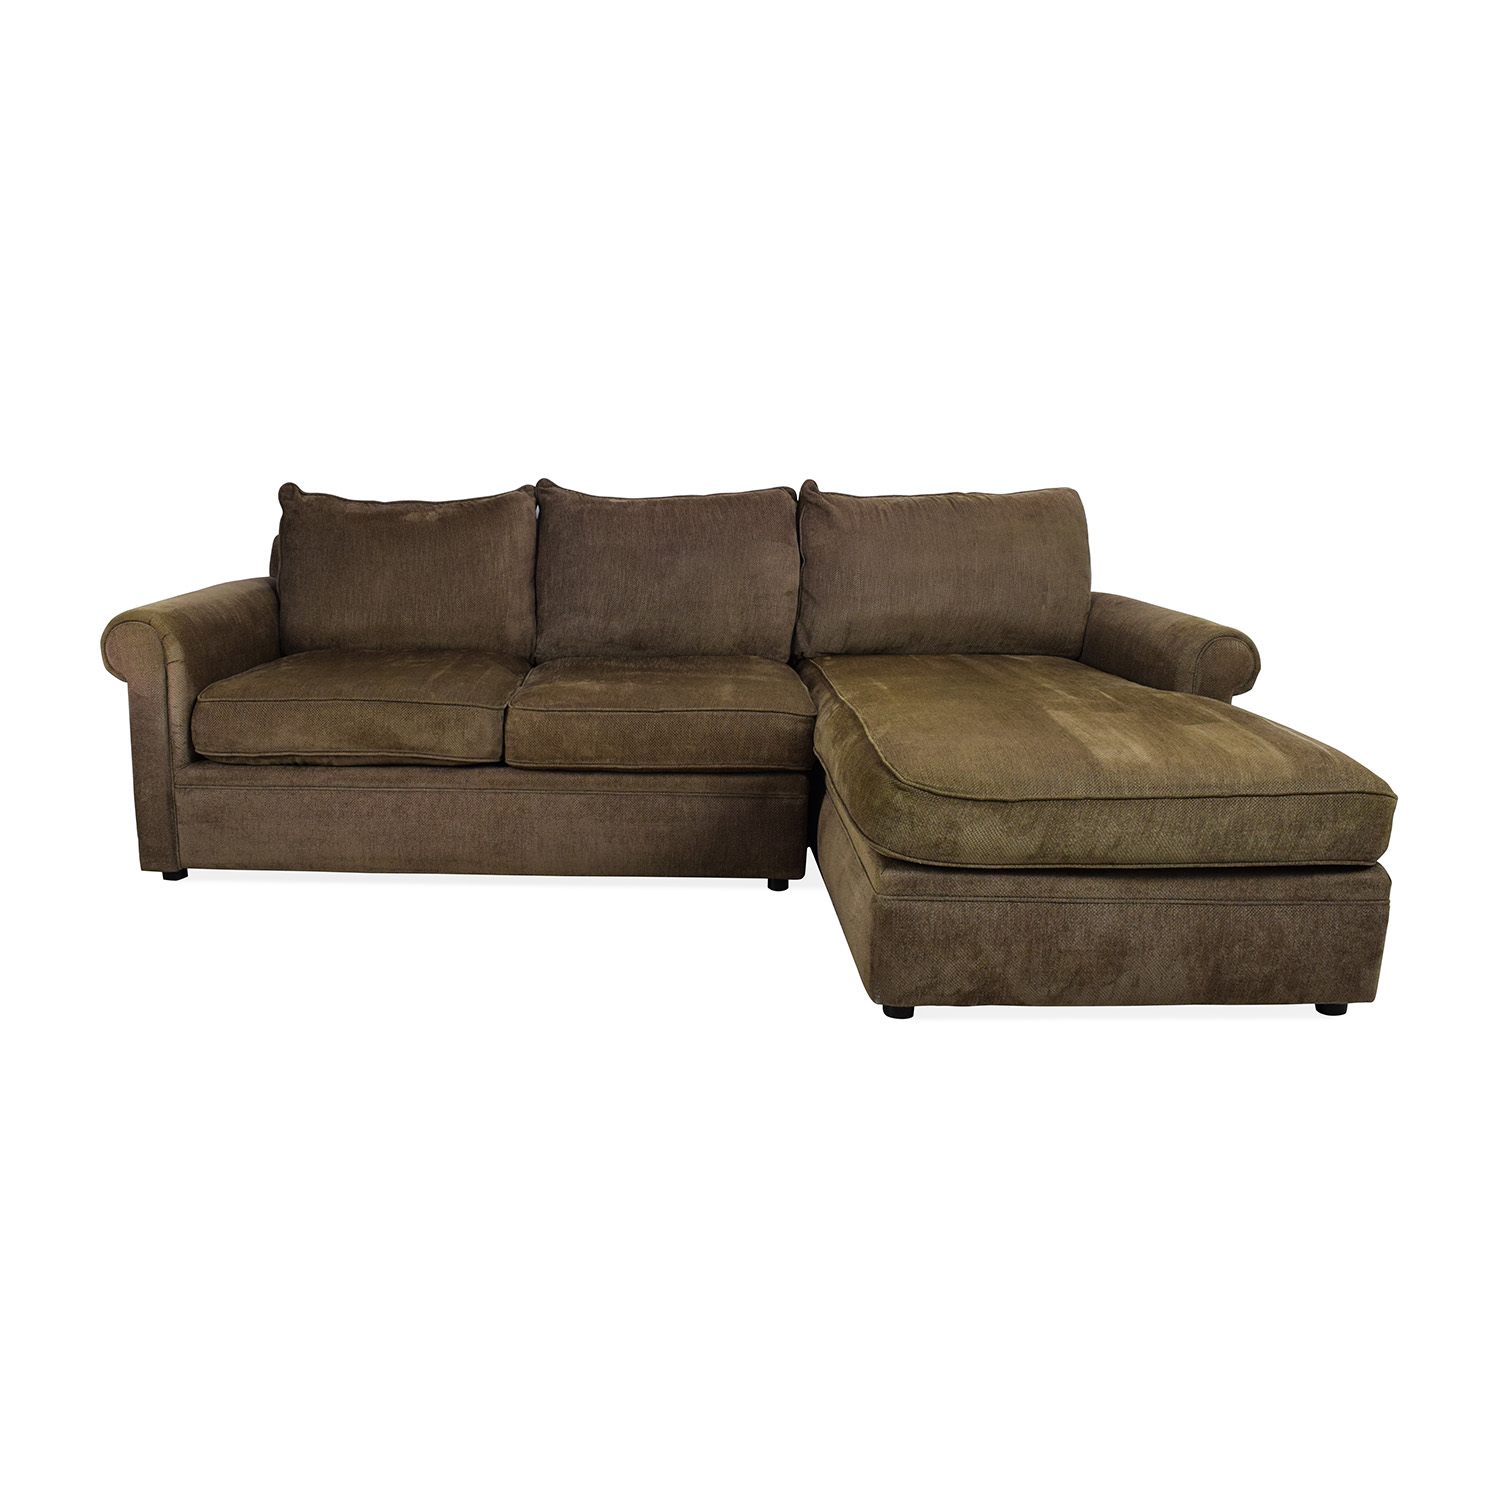 Mason White Leather Sofa: Bloomingdales Sofas 90 Off Bloomingdale S Beige Tweed